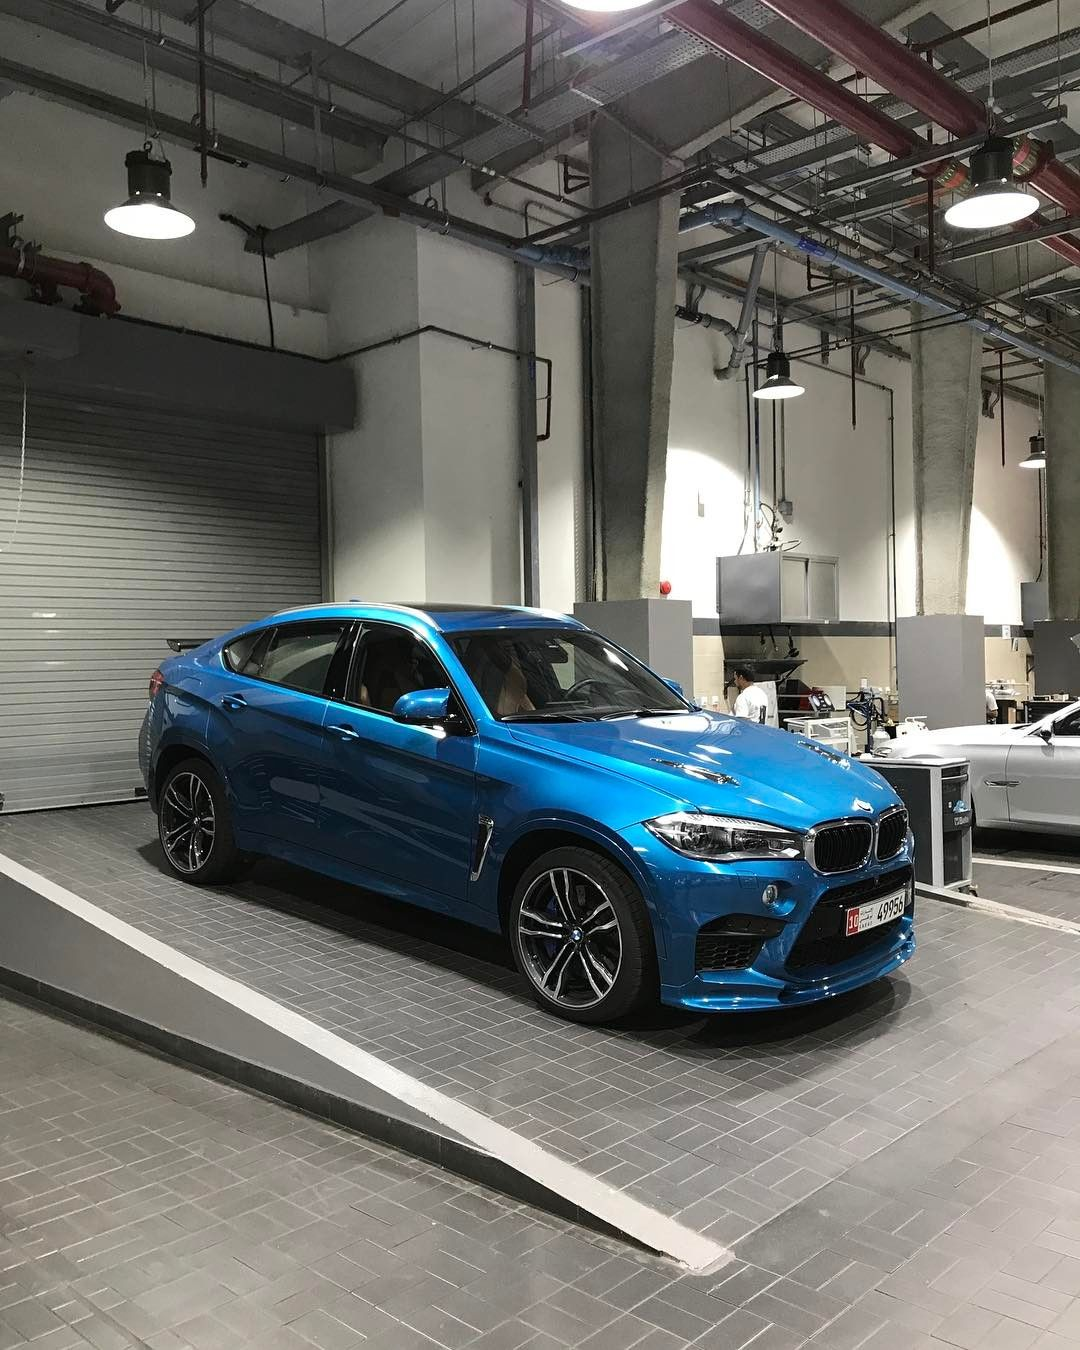 Bmw X6 Price In Germany: Pin De Михайло Біас En BMW